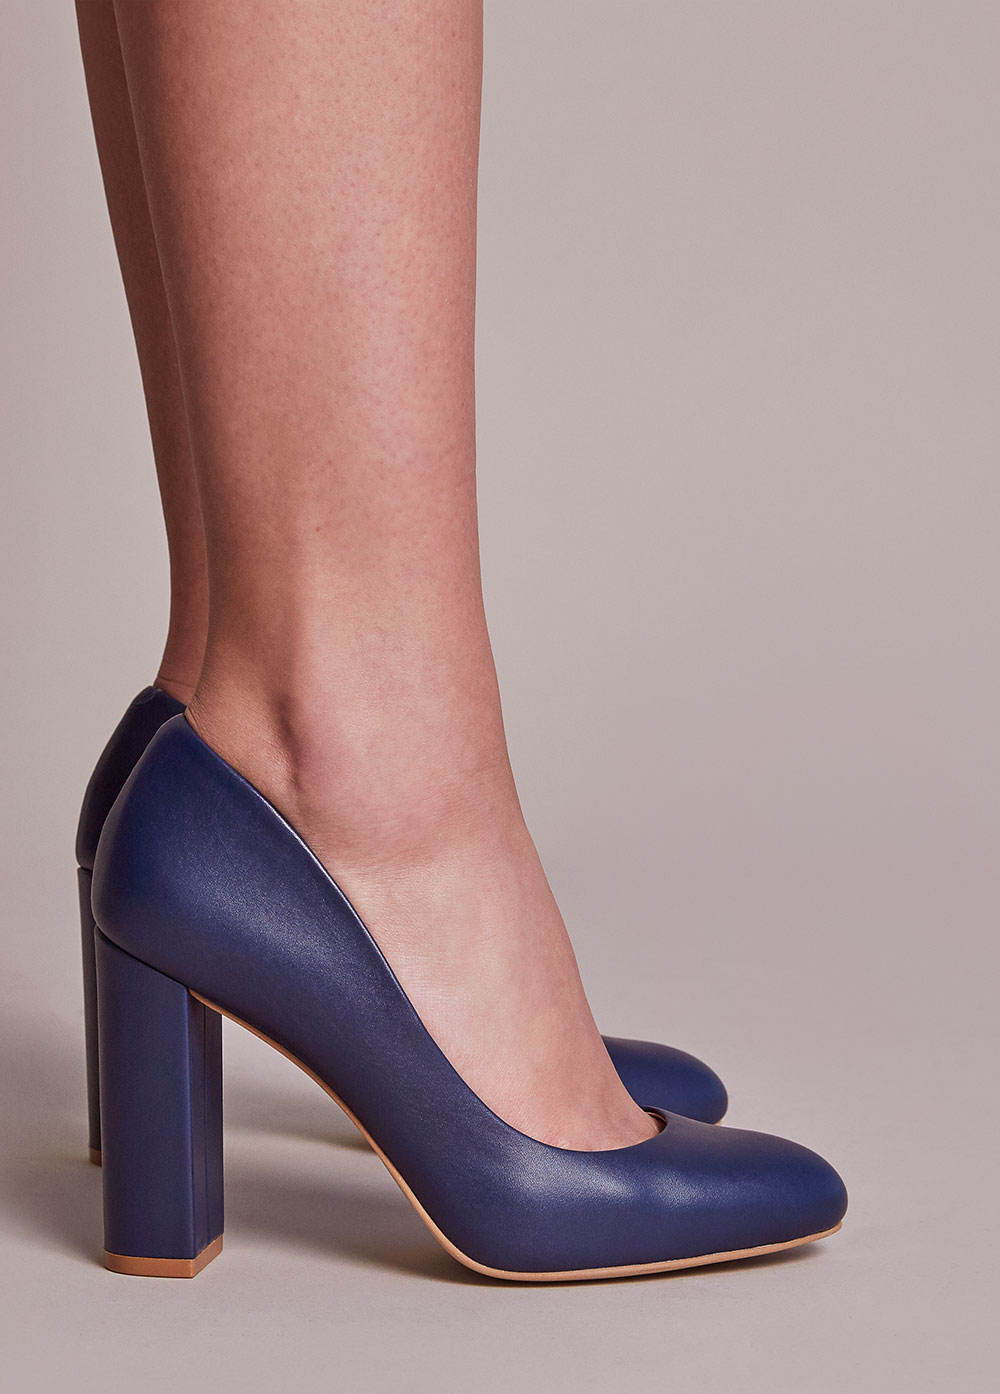 Navy leather 4 inch pump. Design your own shoes